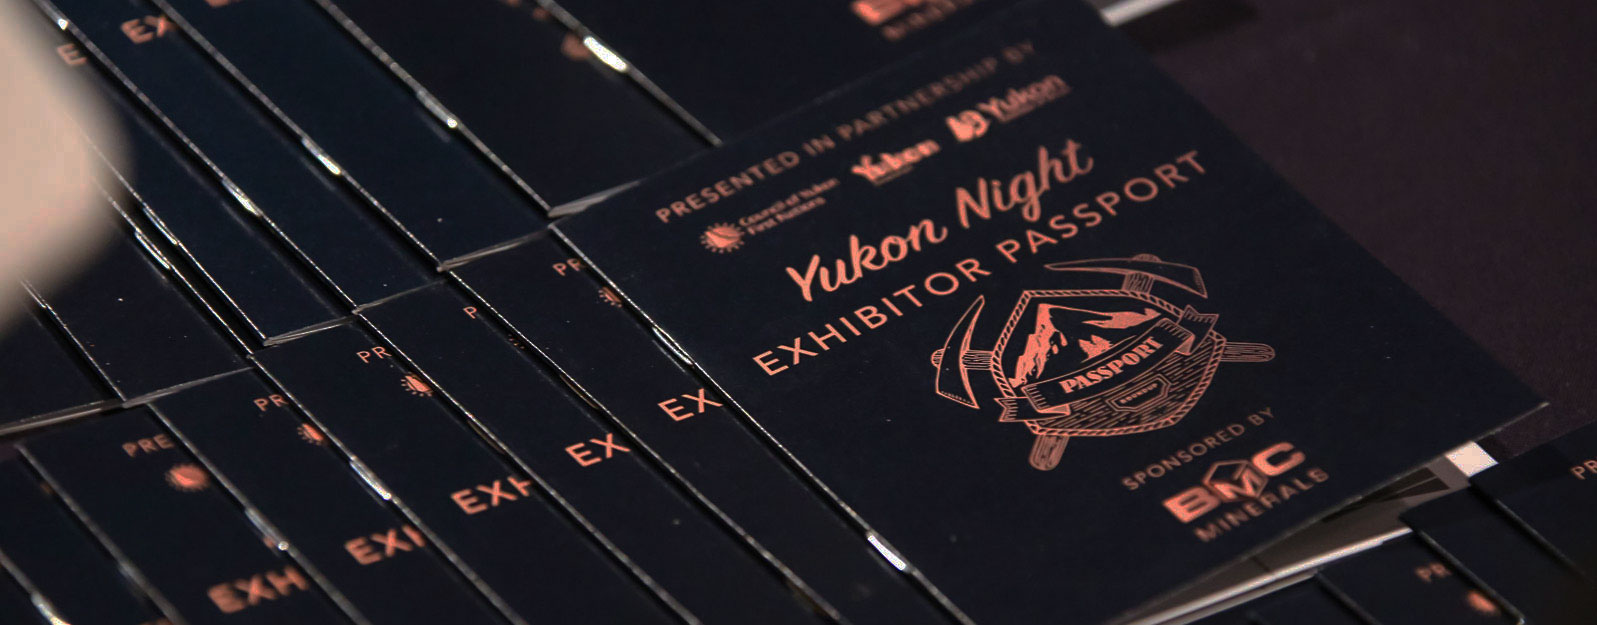 Yukon_Night_6-dark